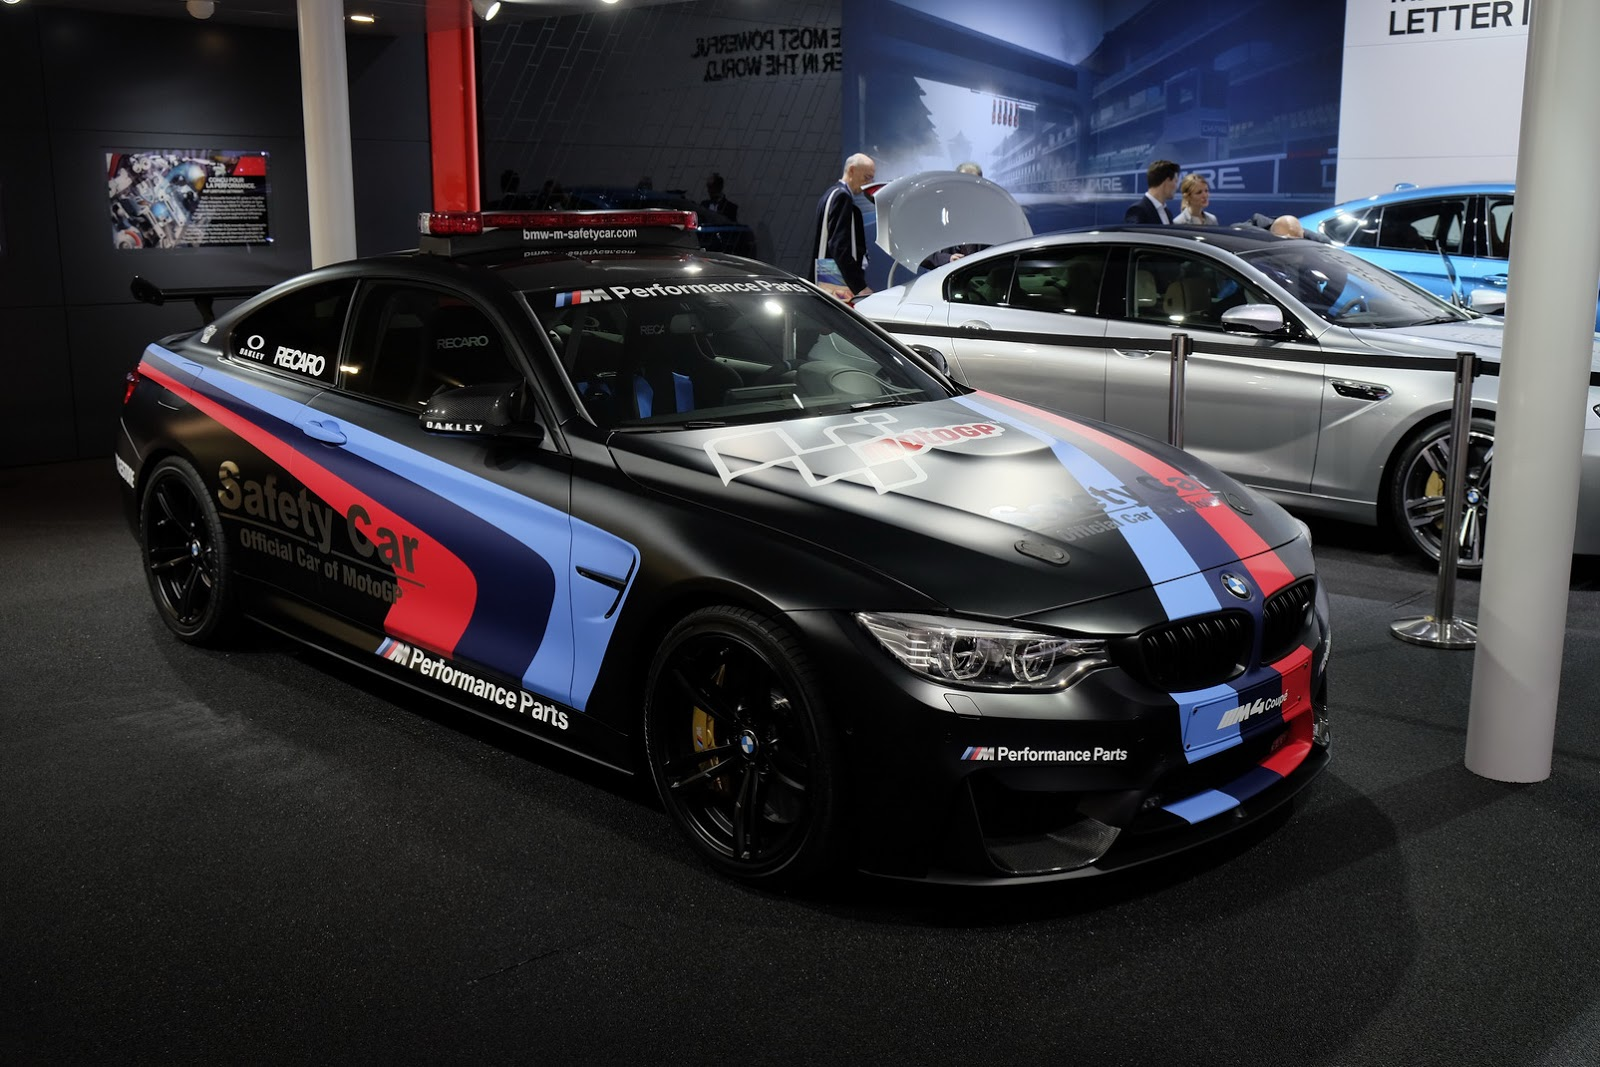 Dubai Police Car Wallpapers Upcoming Bmw M4 Gts Reportedly Confirmed For U S Next Year